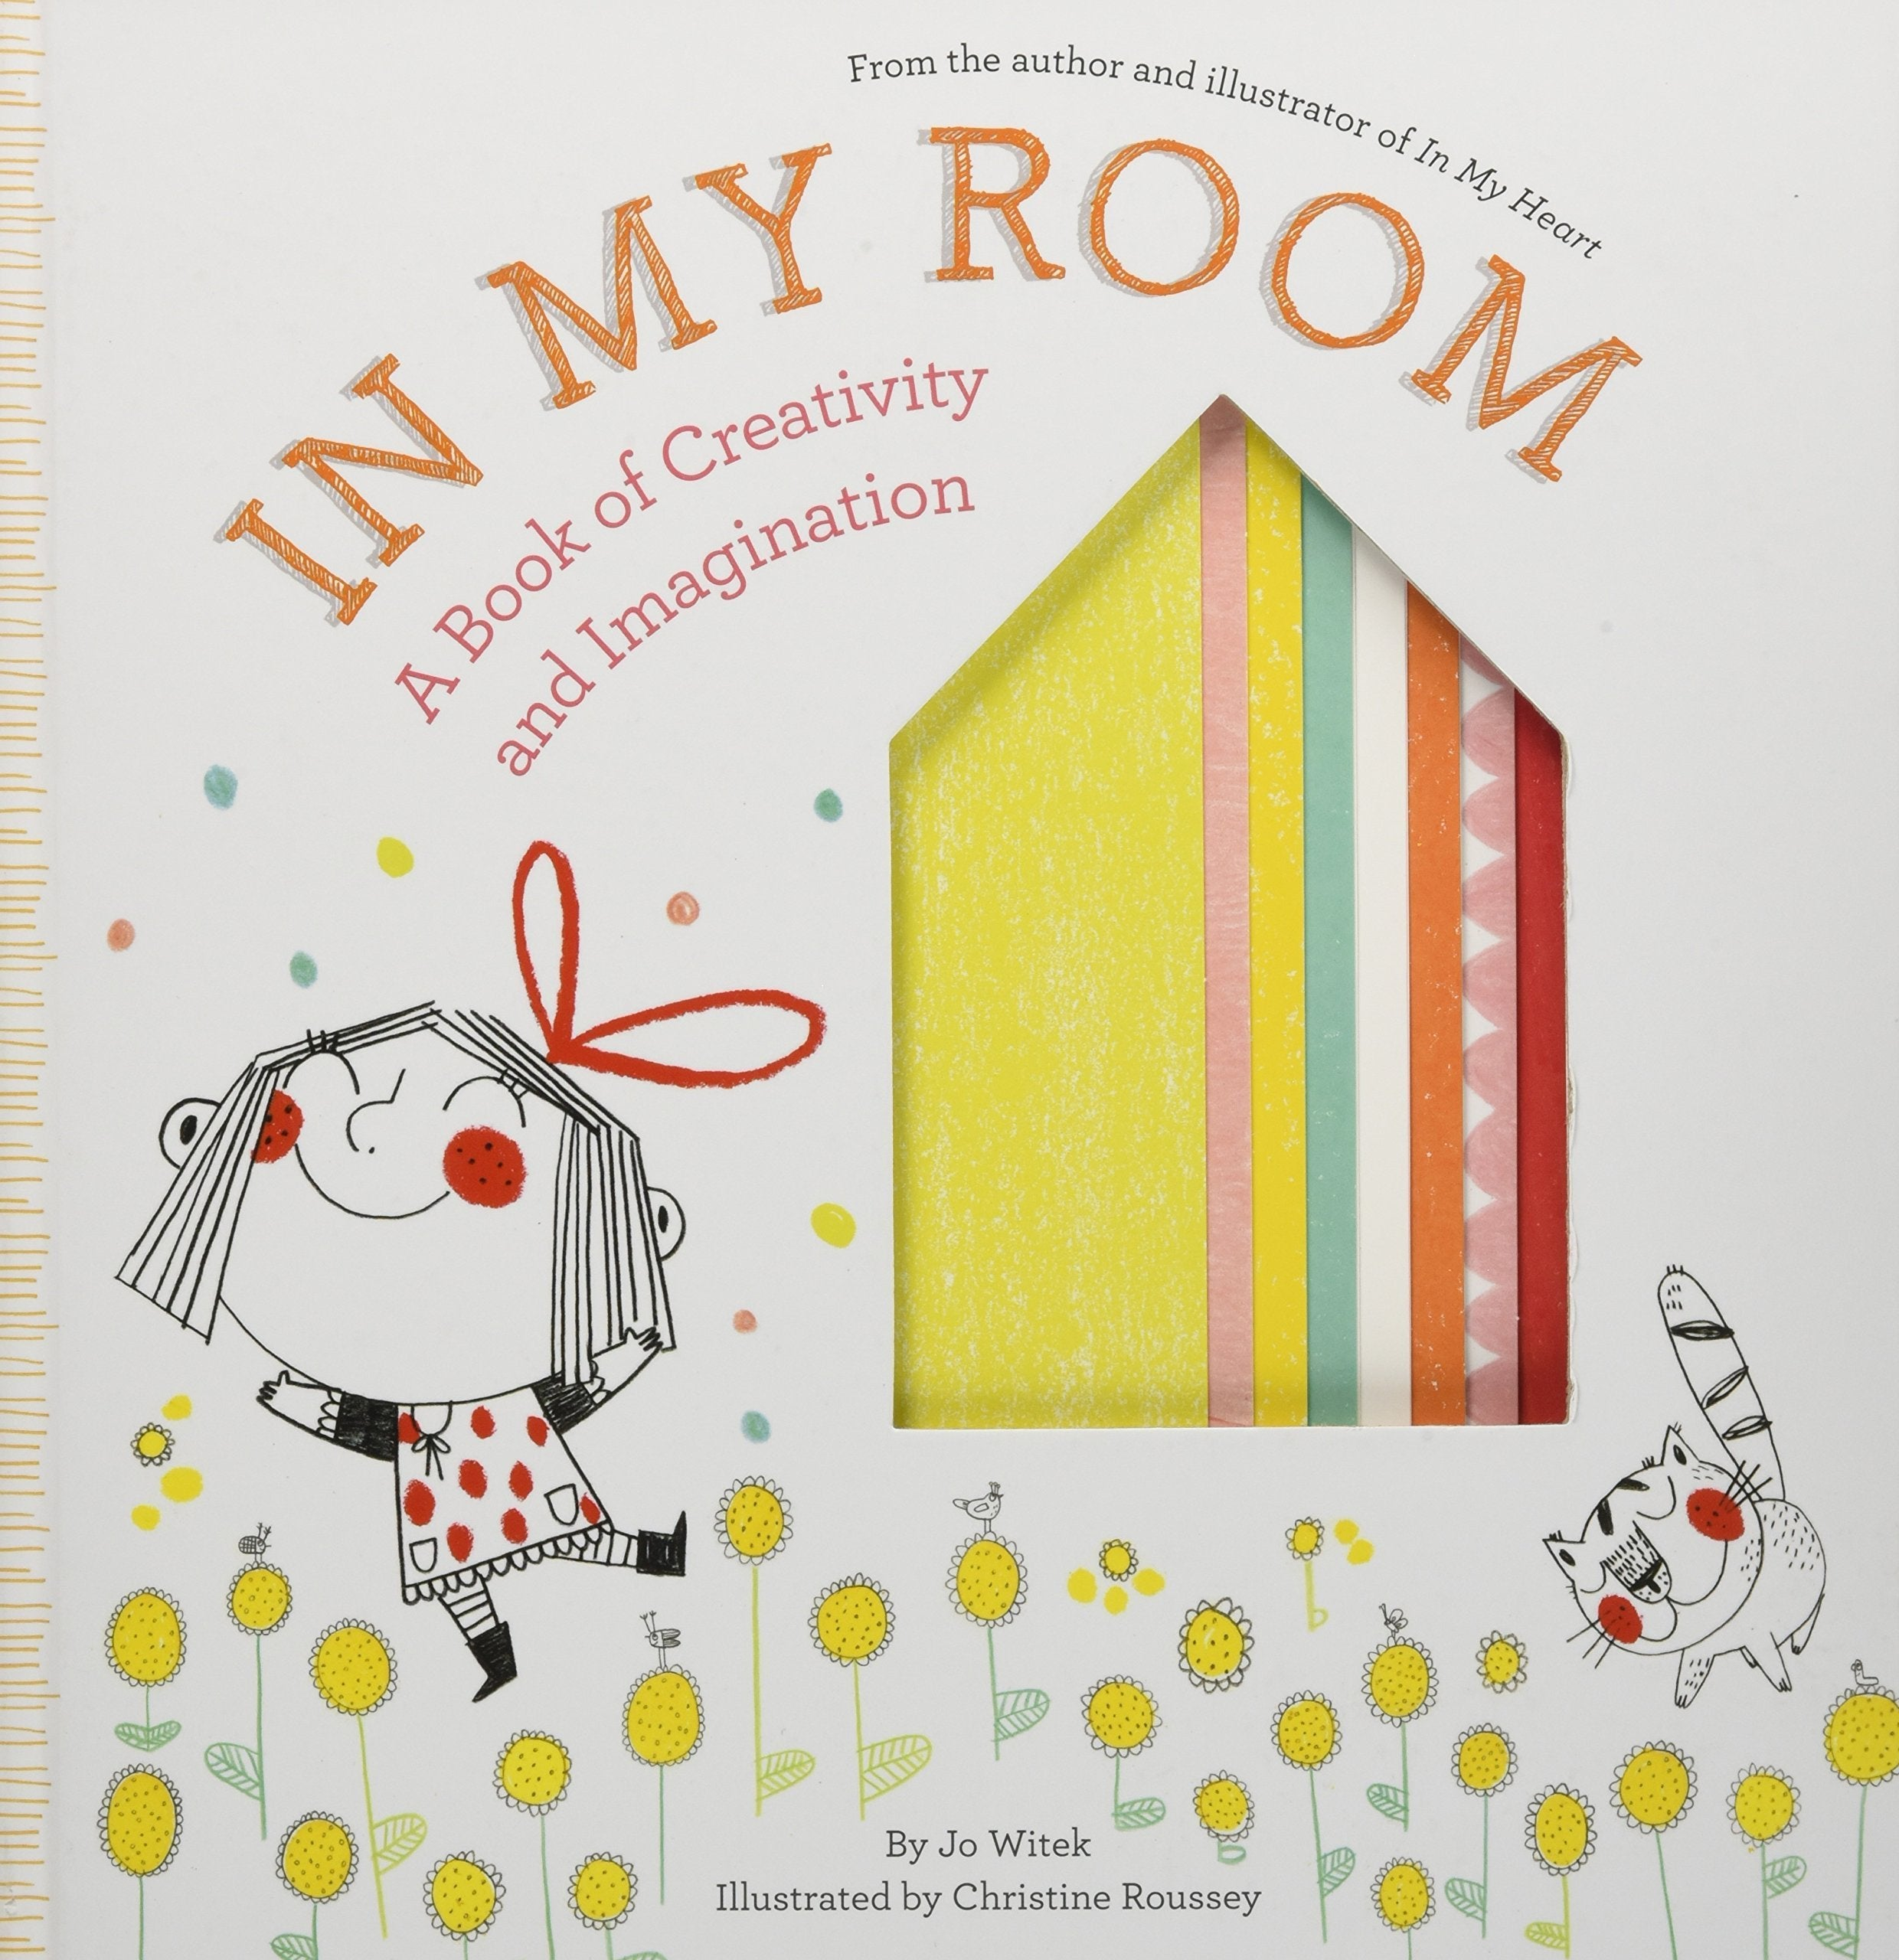 In My Room : A Book Of Creativity And Imagination